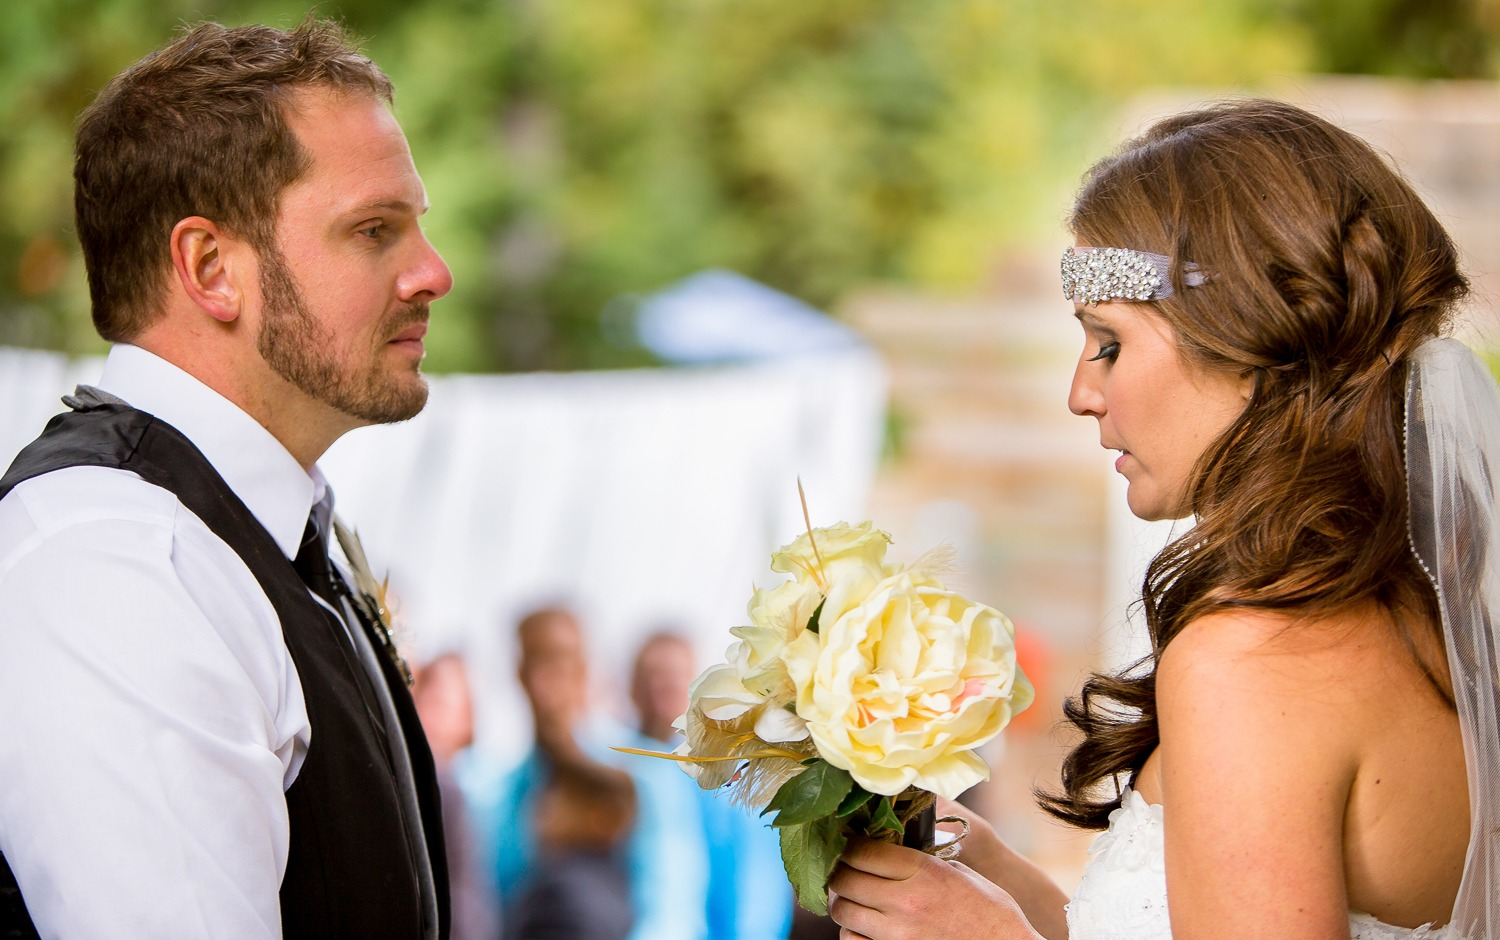 Bride and Groom Reciting Personal Wedding Vows They Wrote Themselves